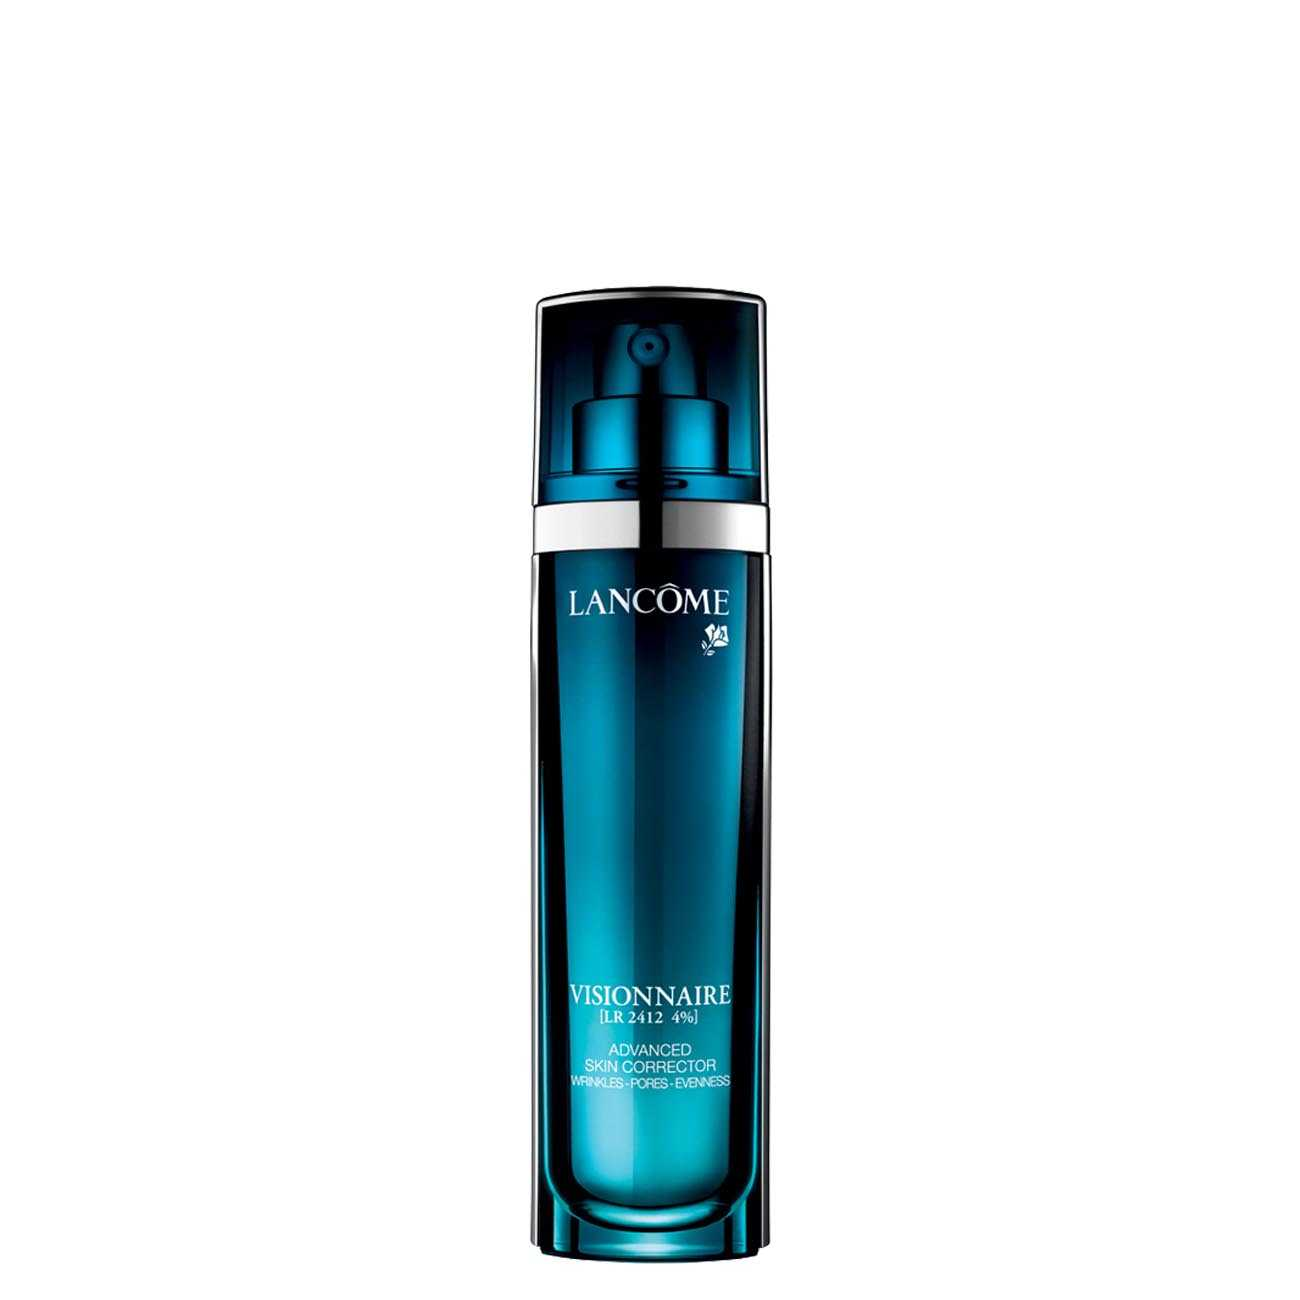 VISIONNAIRE ADVANCED SKIN CORRECTOR RECOVERY 50 ML